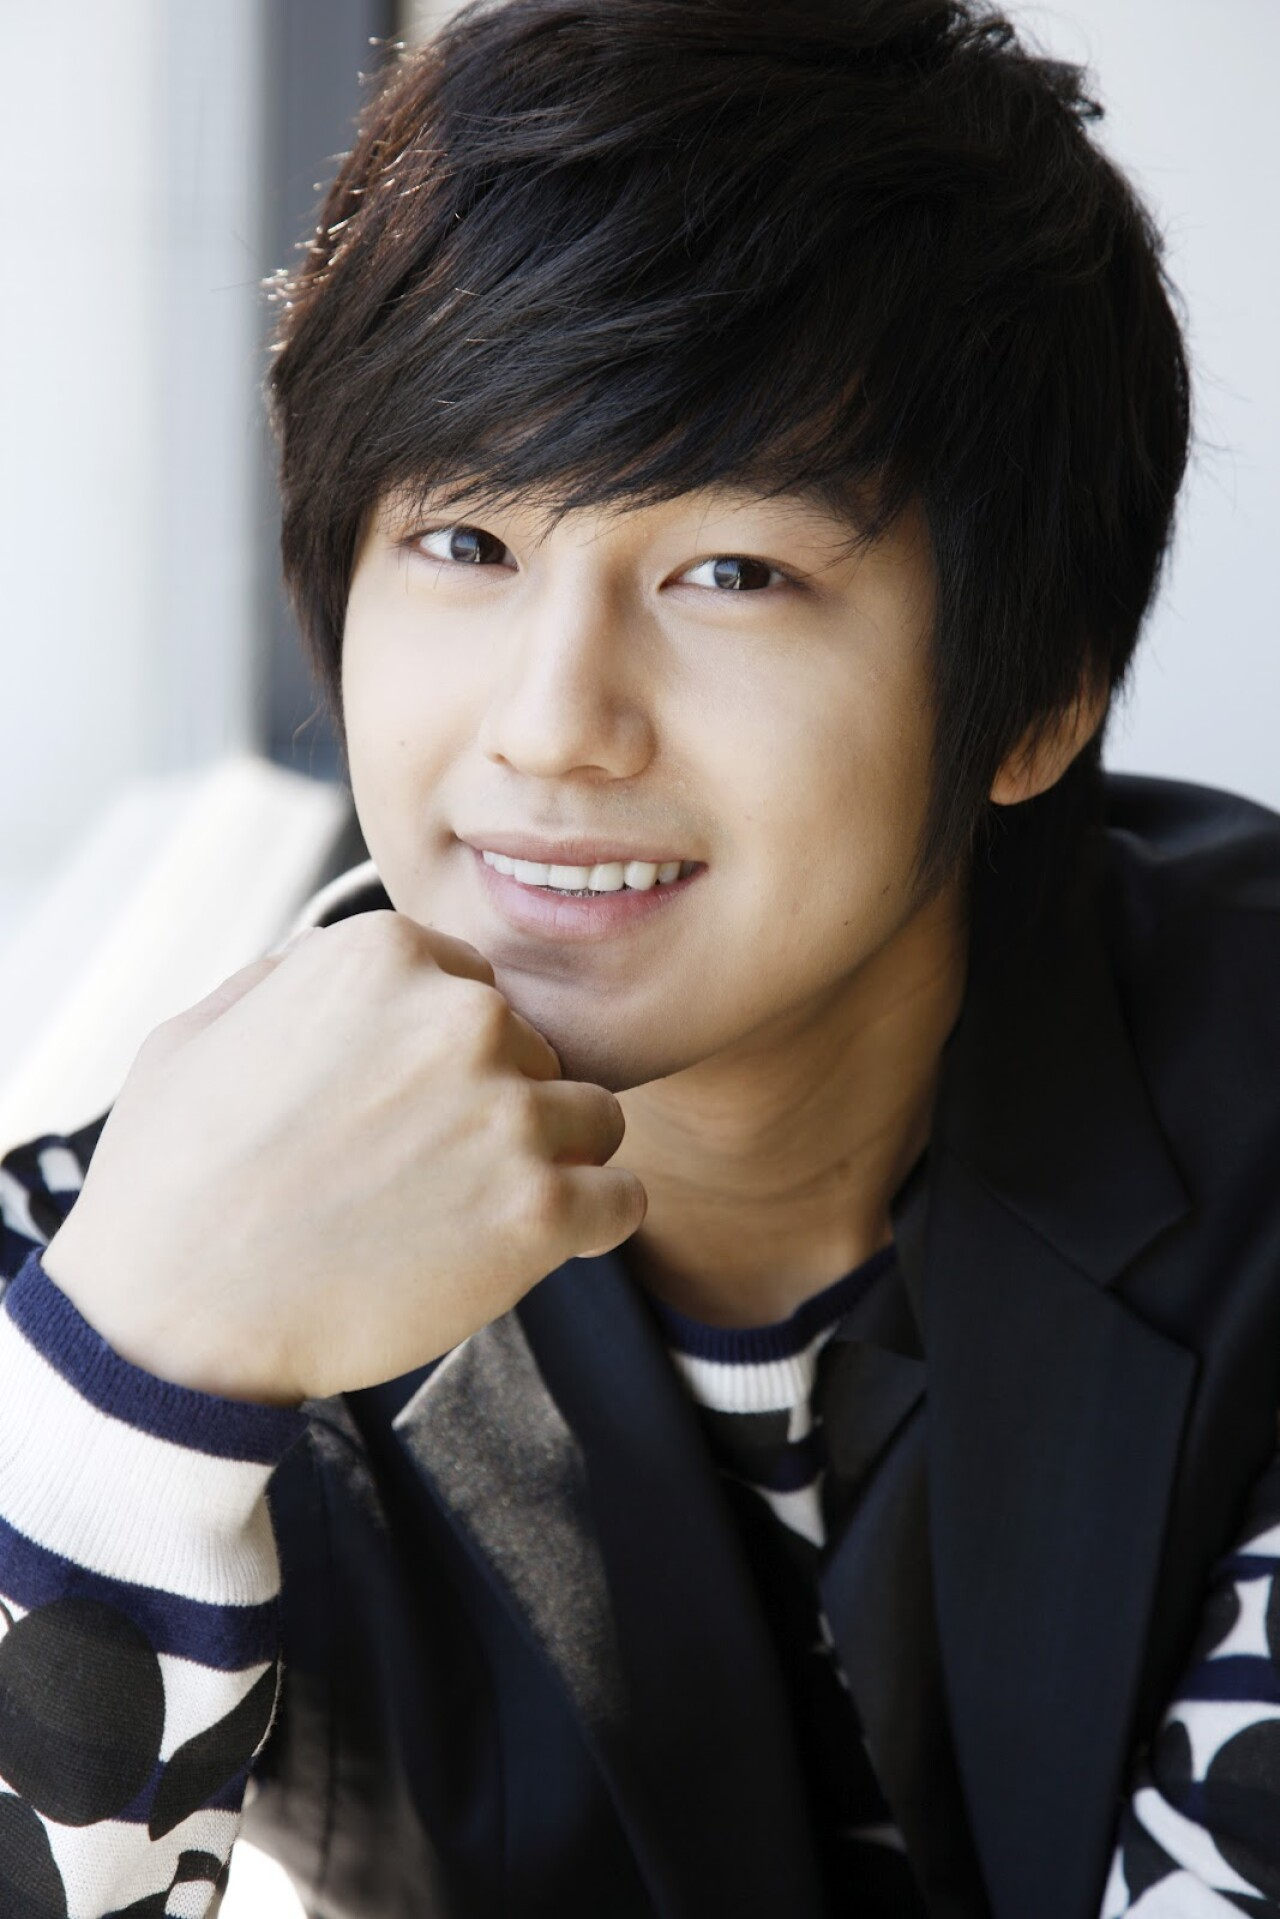 25 Kim Sang Bum Facts